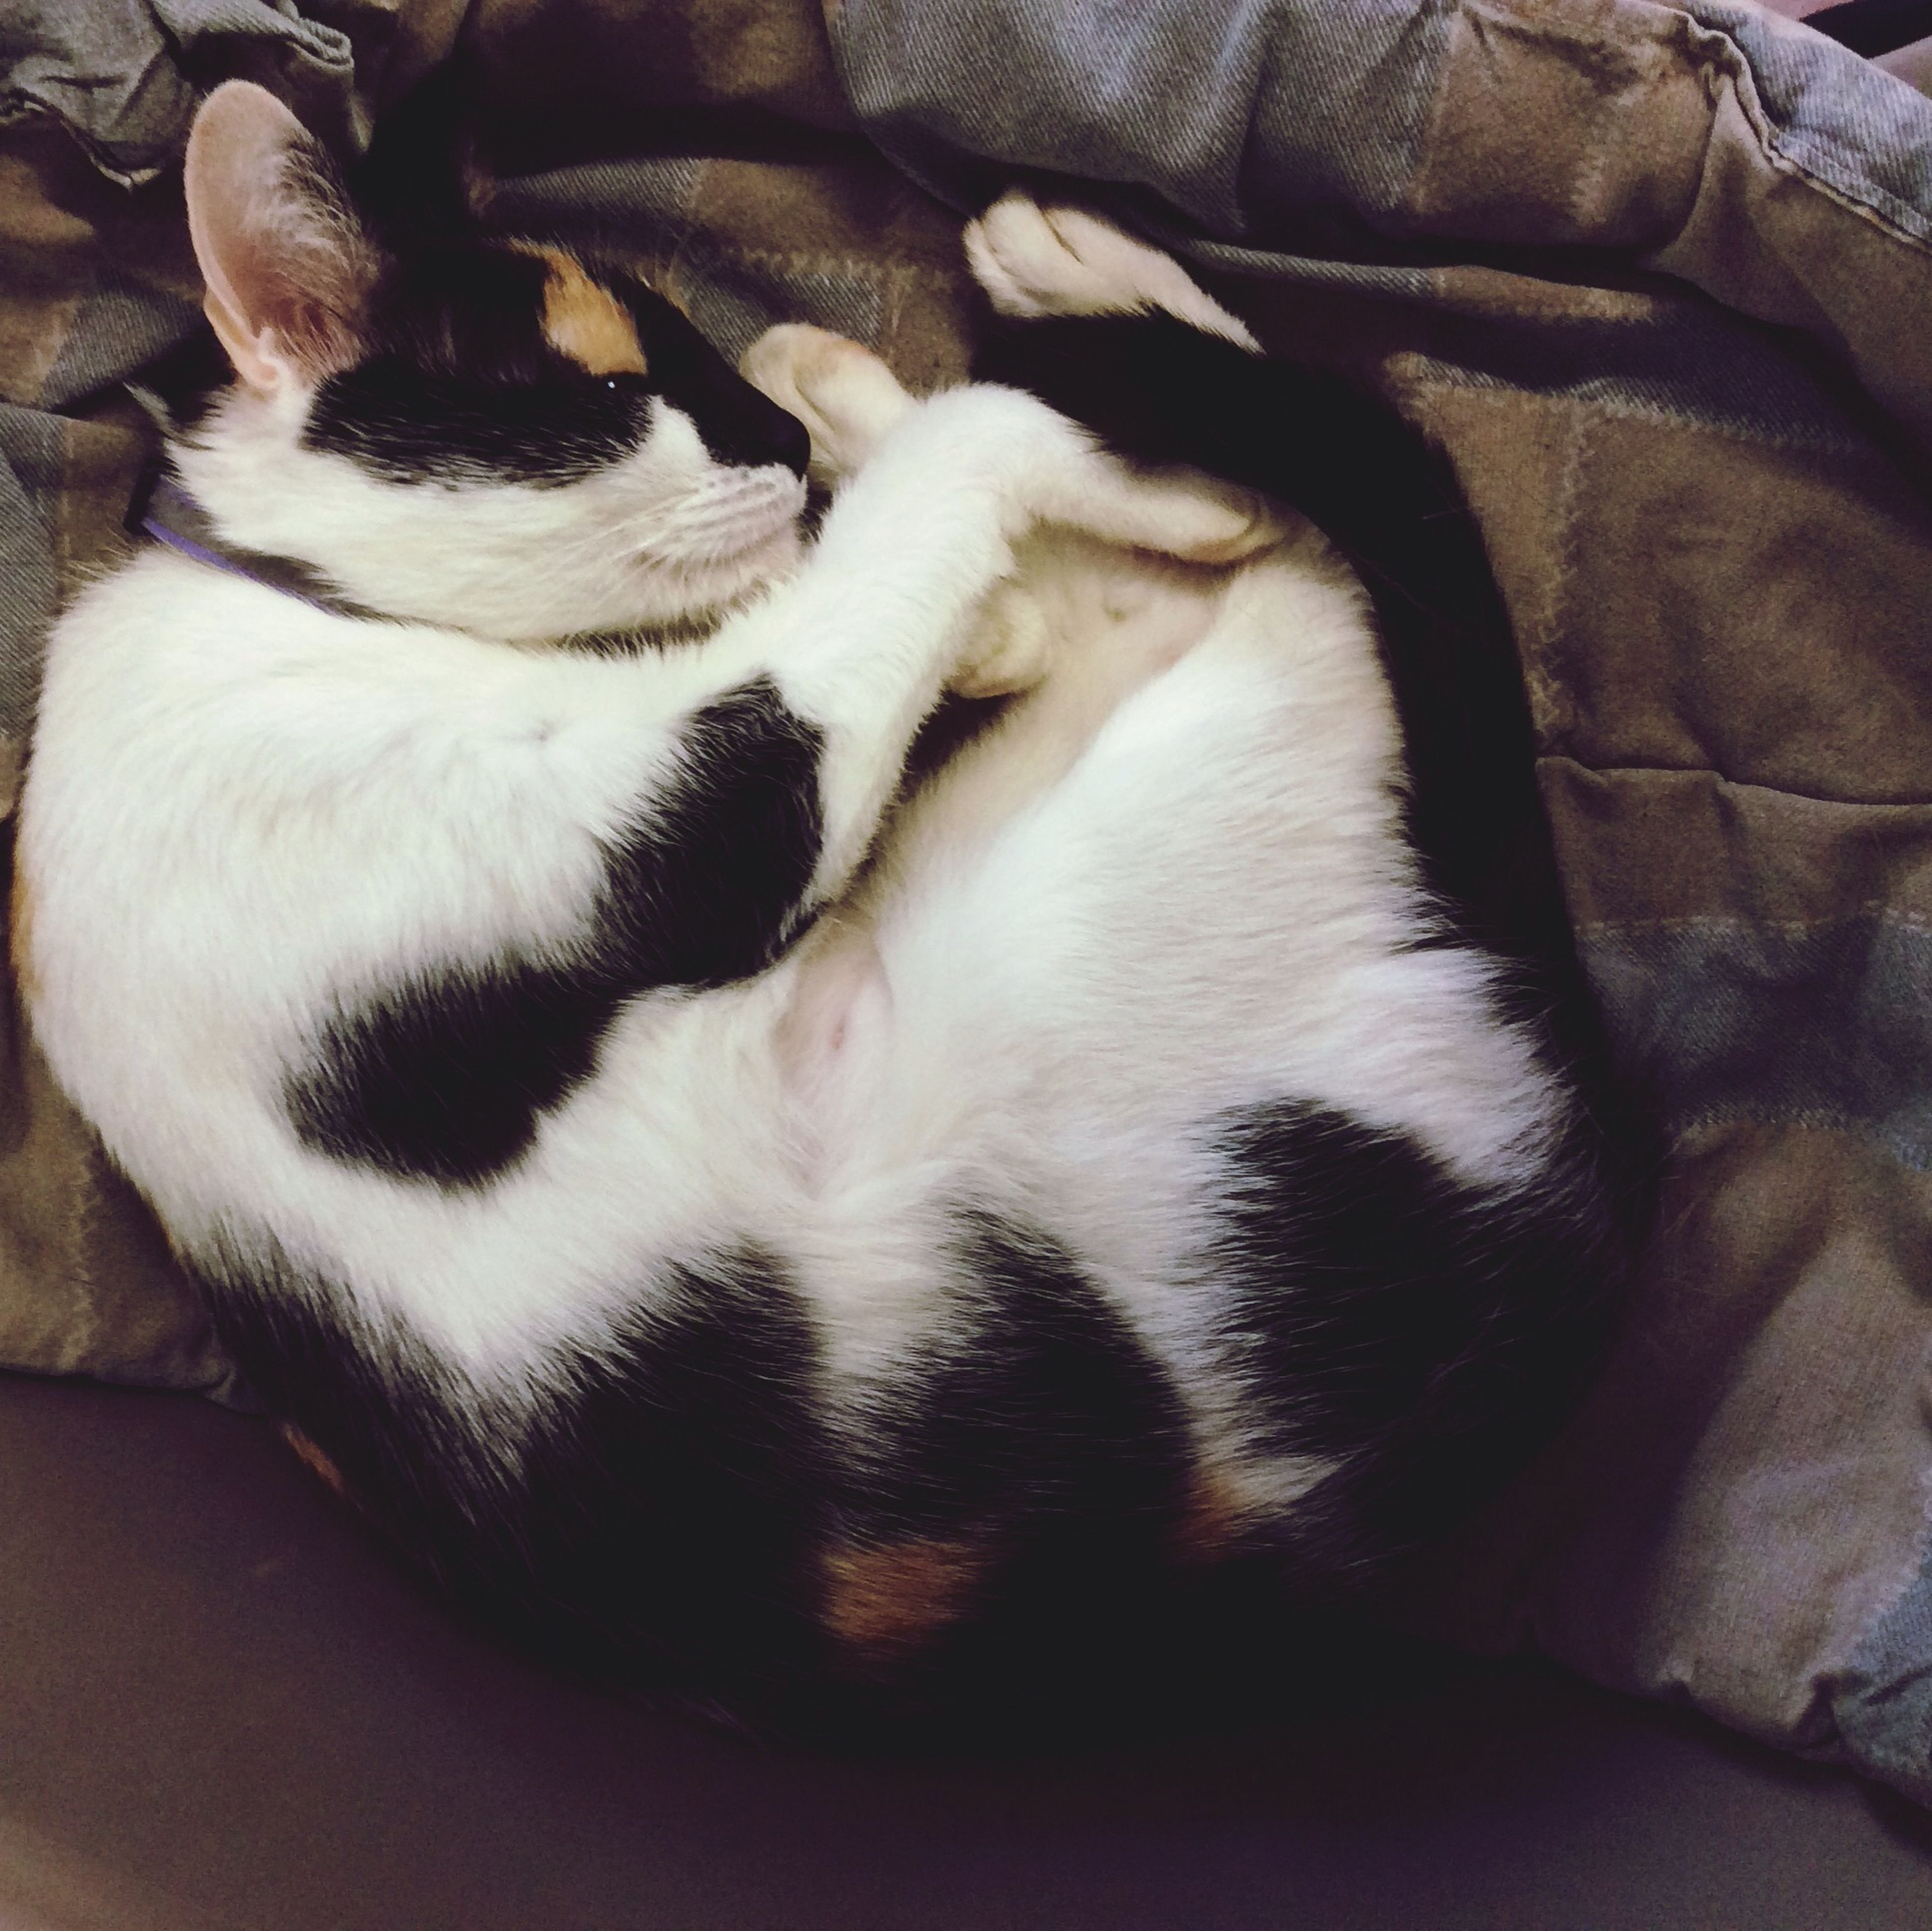 domestic animals, animal themes, pets, mammal, one animal, indoors, sleeping, relaxation, dog, resting, lying down, high angle view, bed, domestic cat, eyes closed, togetherness, cat, two animals, home interior, young animal